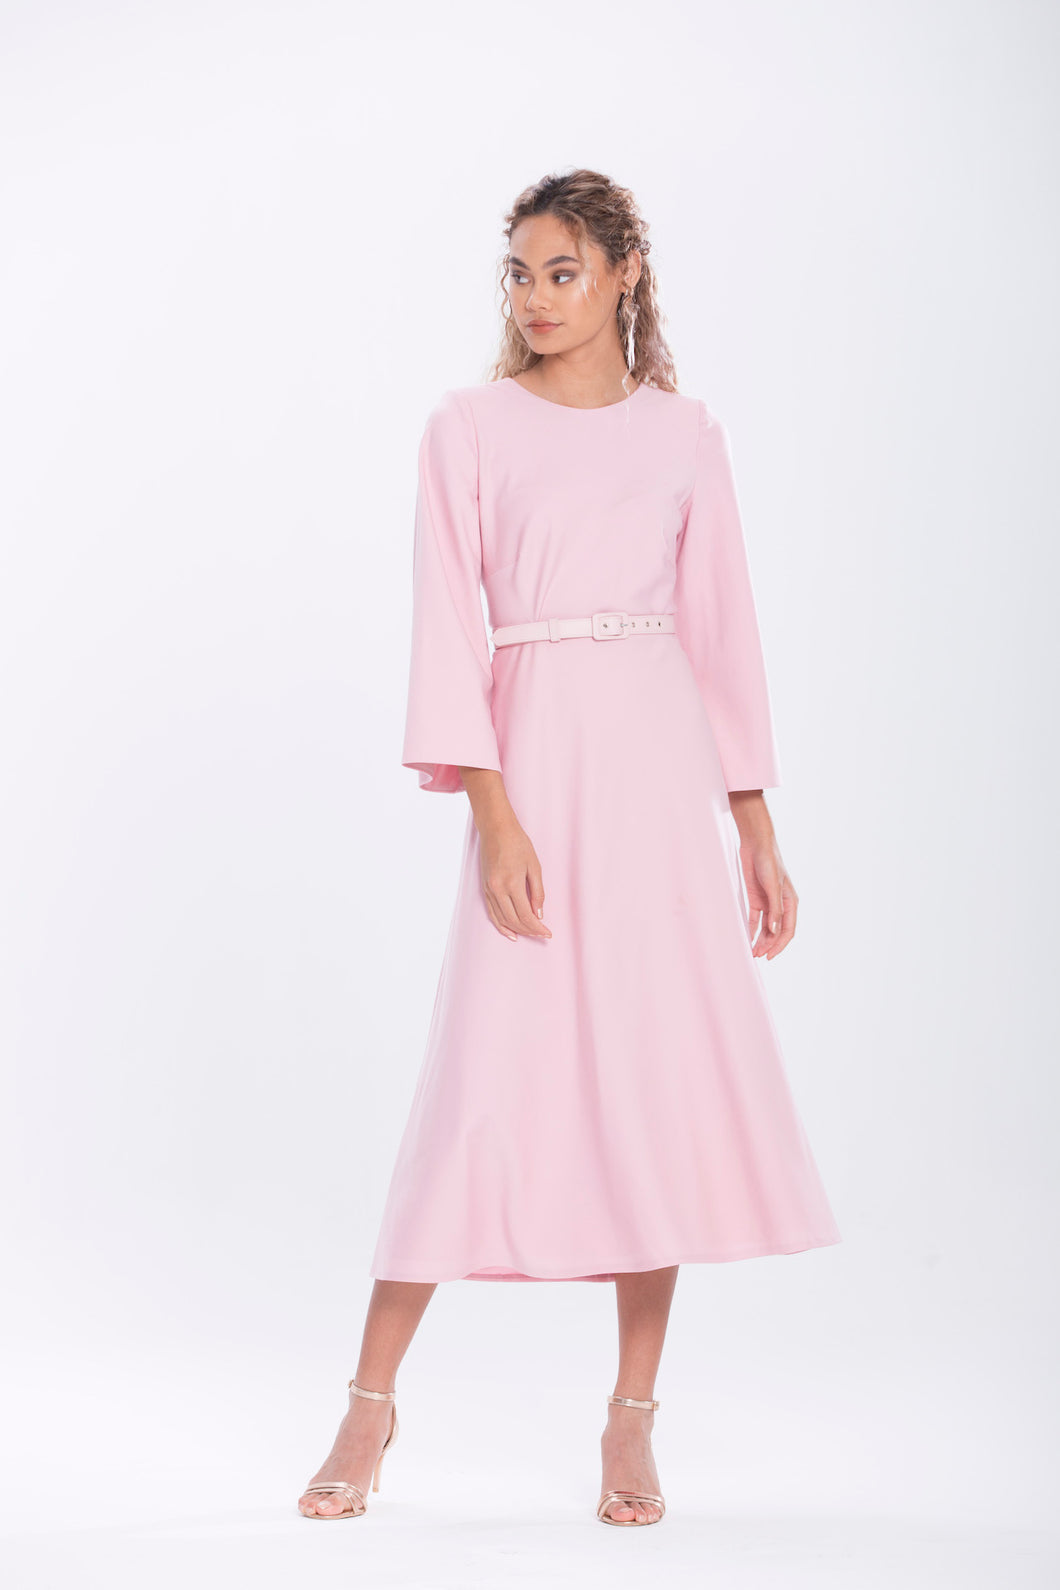 Evening Rose Italian Crepe Cocktail Dress